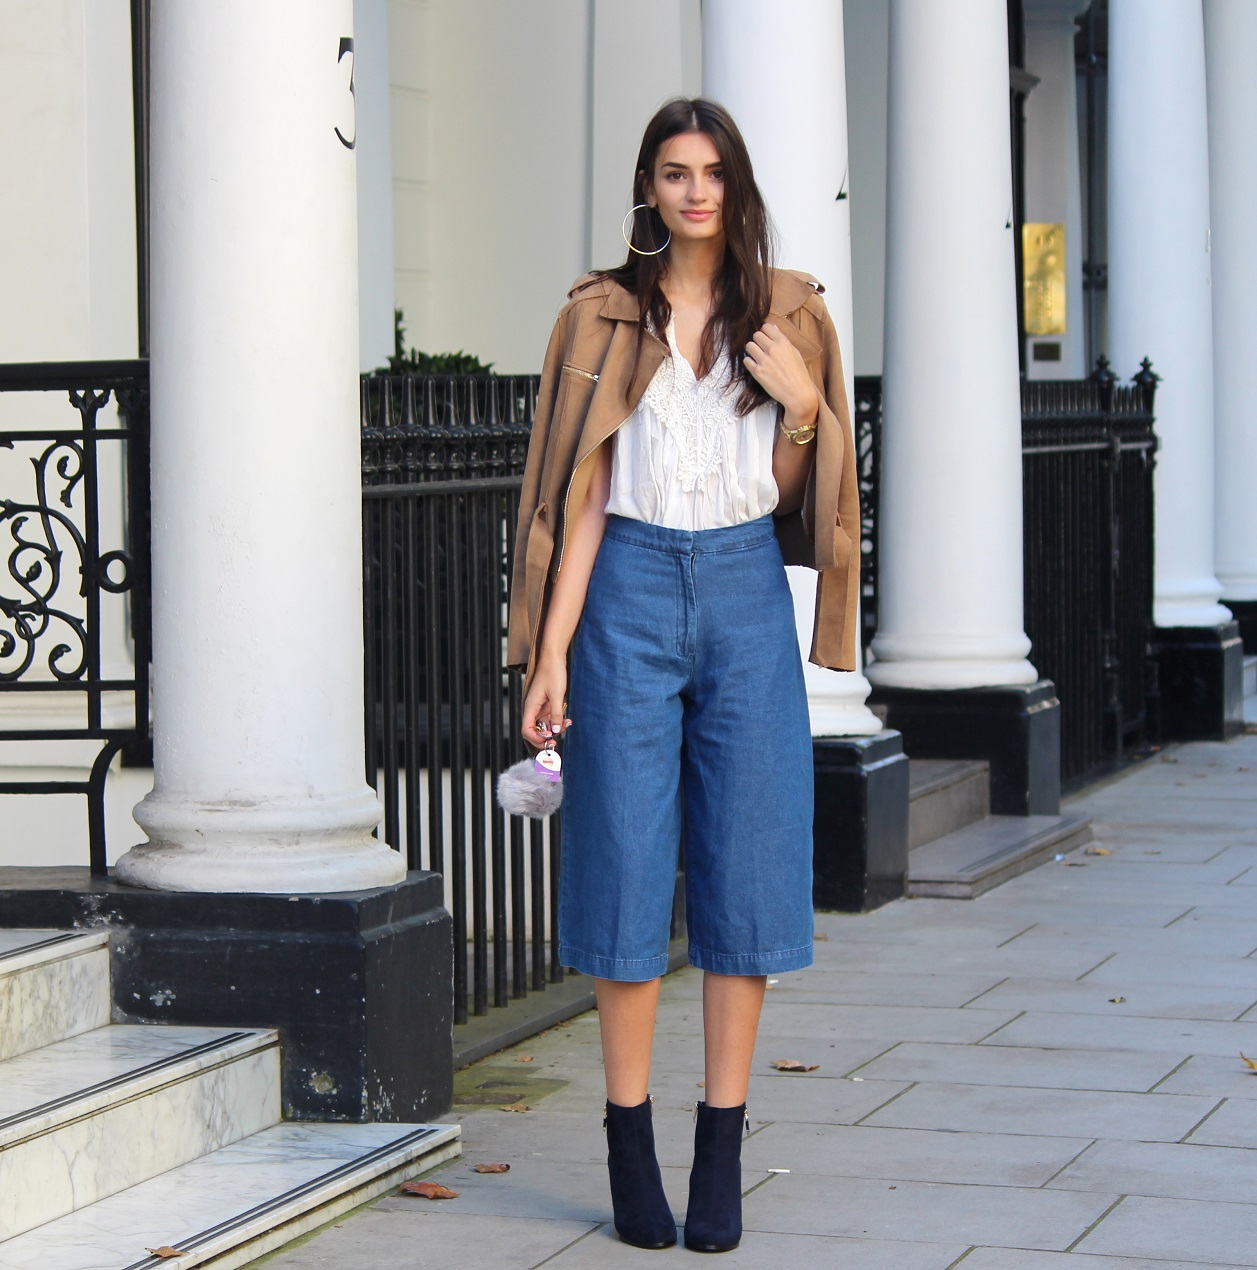 peexo fashion blogger wearing denim culottes and suede